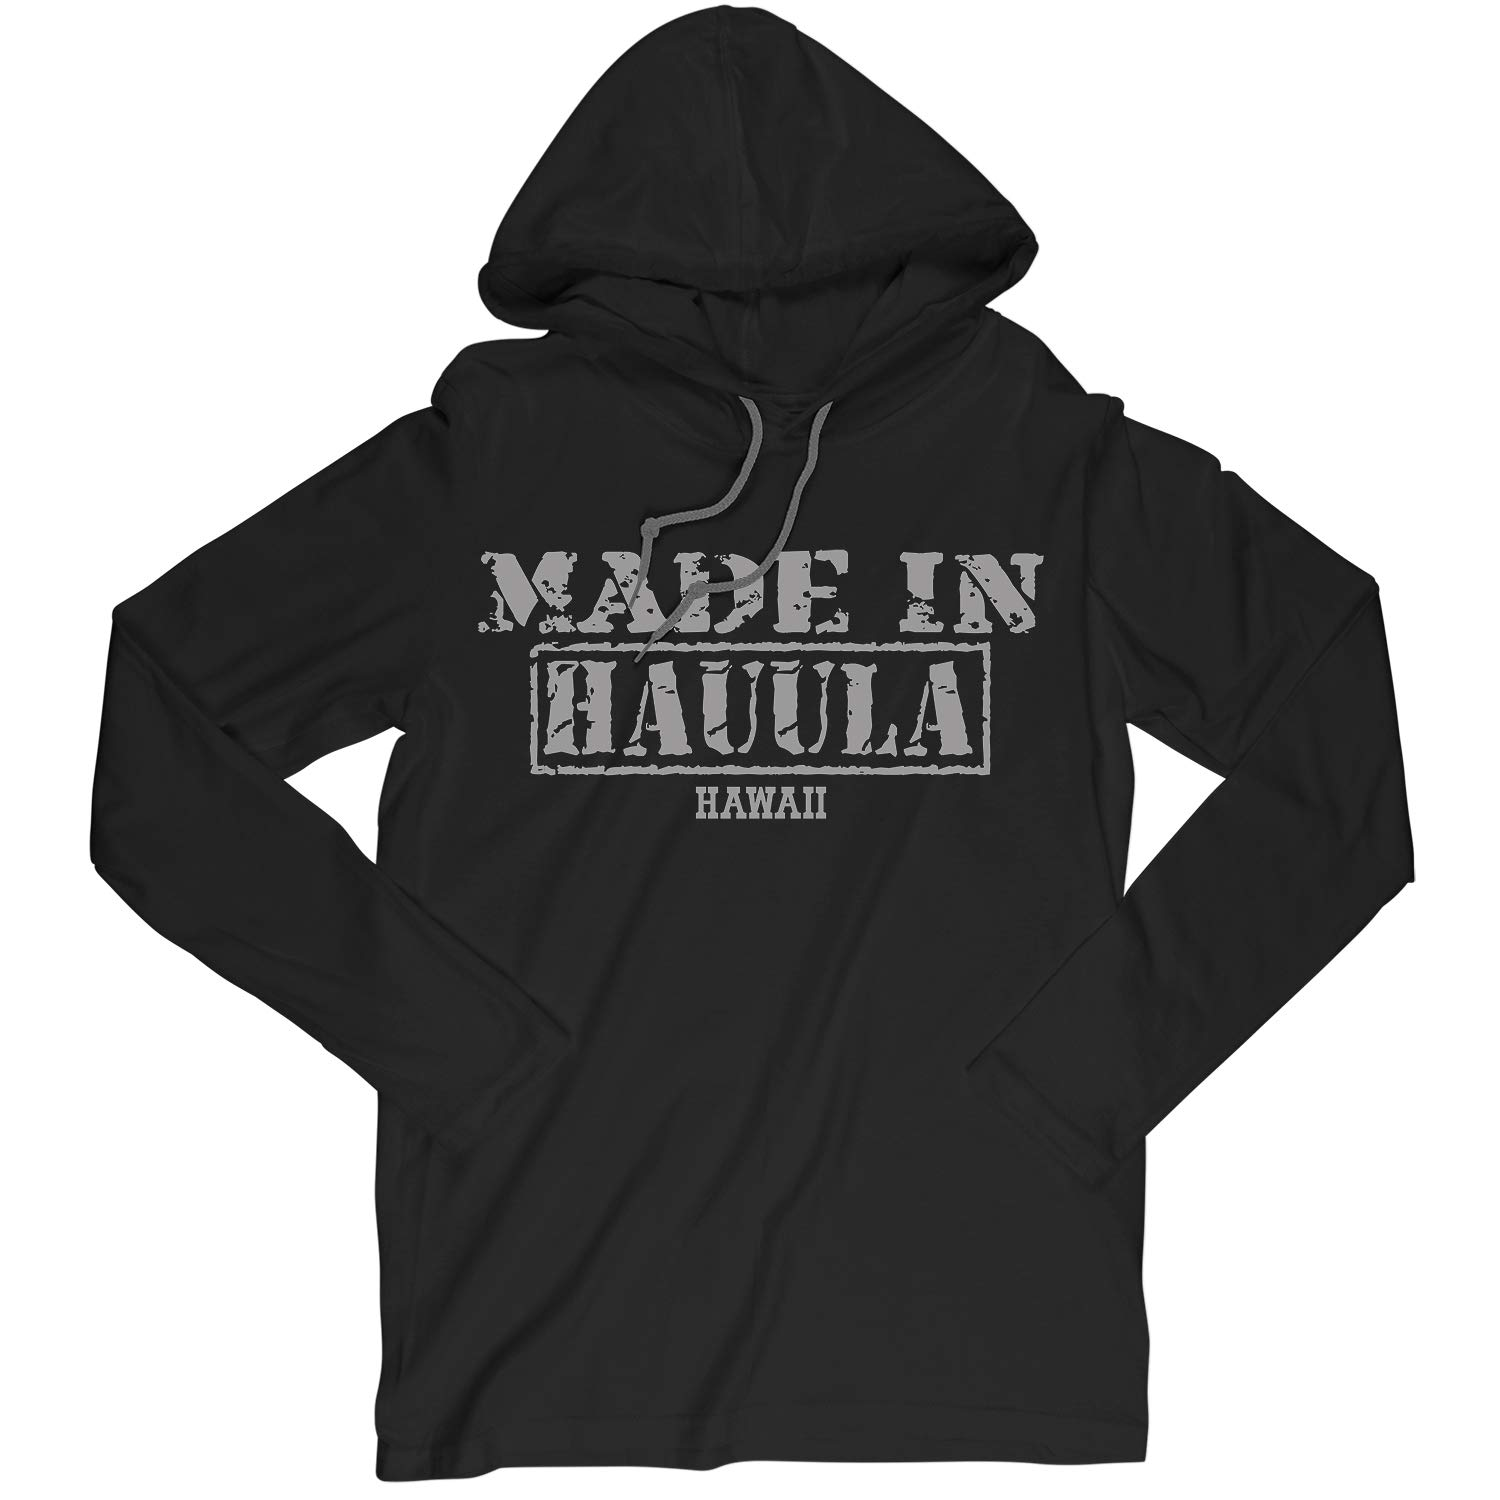 Retro Vintage Style Made In Hawaii Hauula Hometown Hooded T Shirt 4490